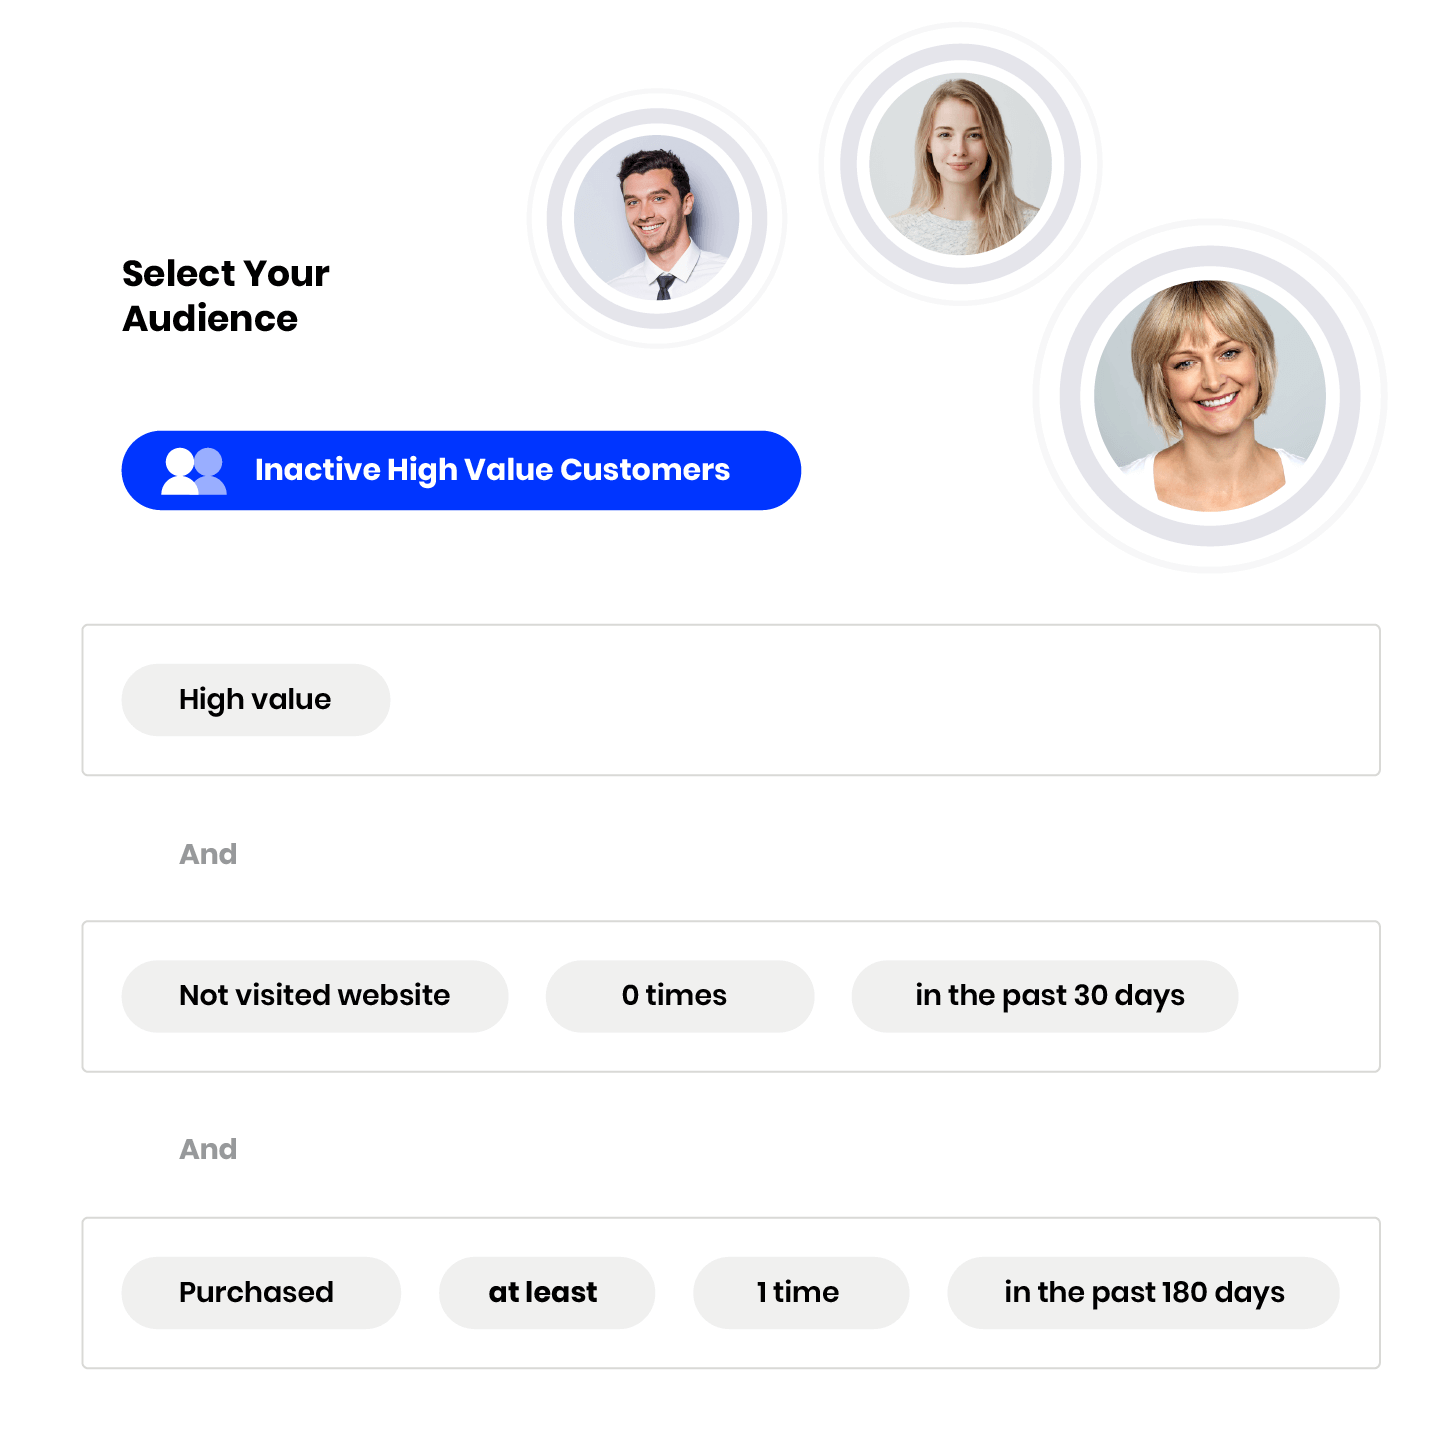 Select Your Audience